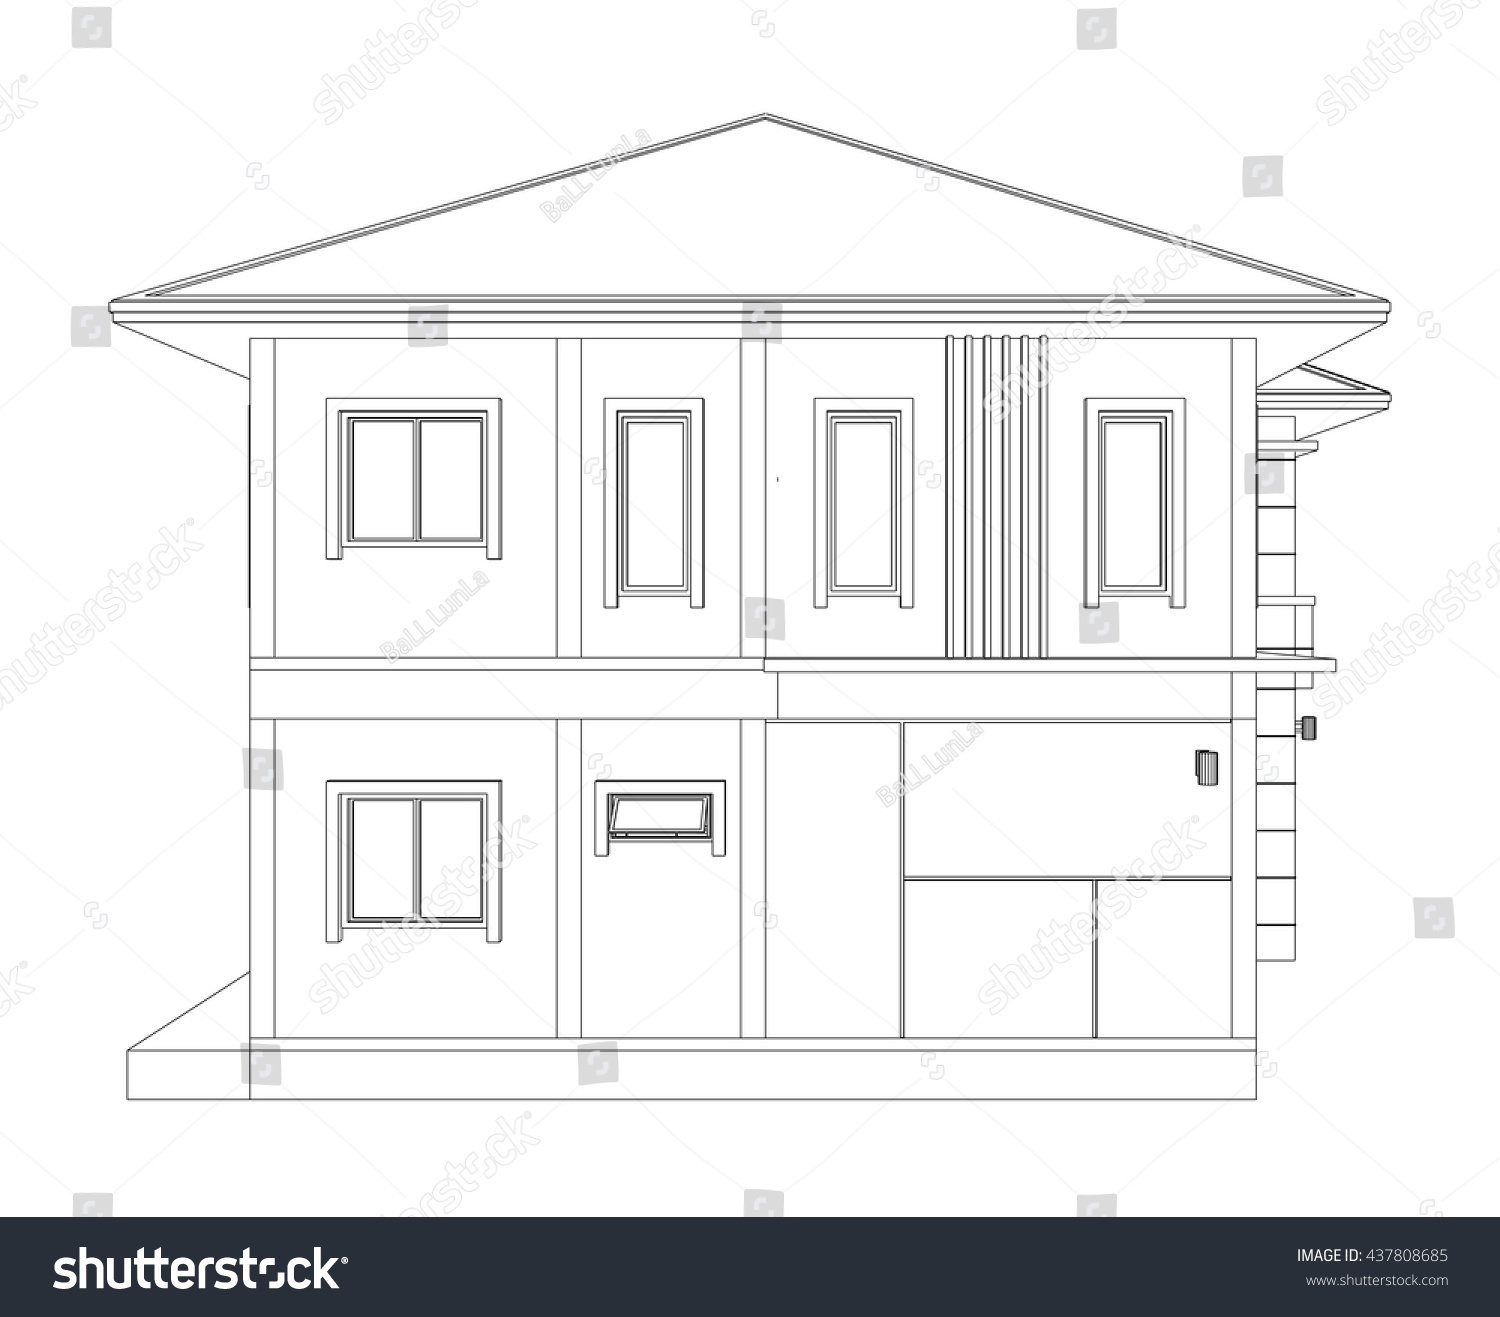 Blueprint drawing 3d home building side stock vector for Building houses with side views